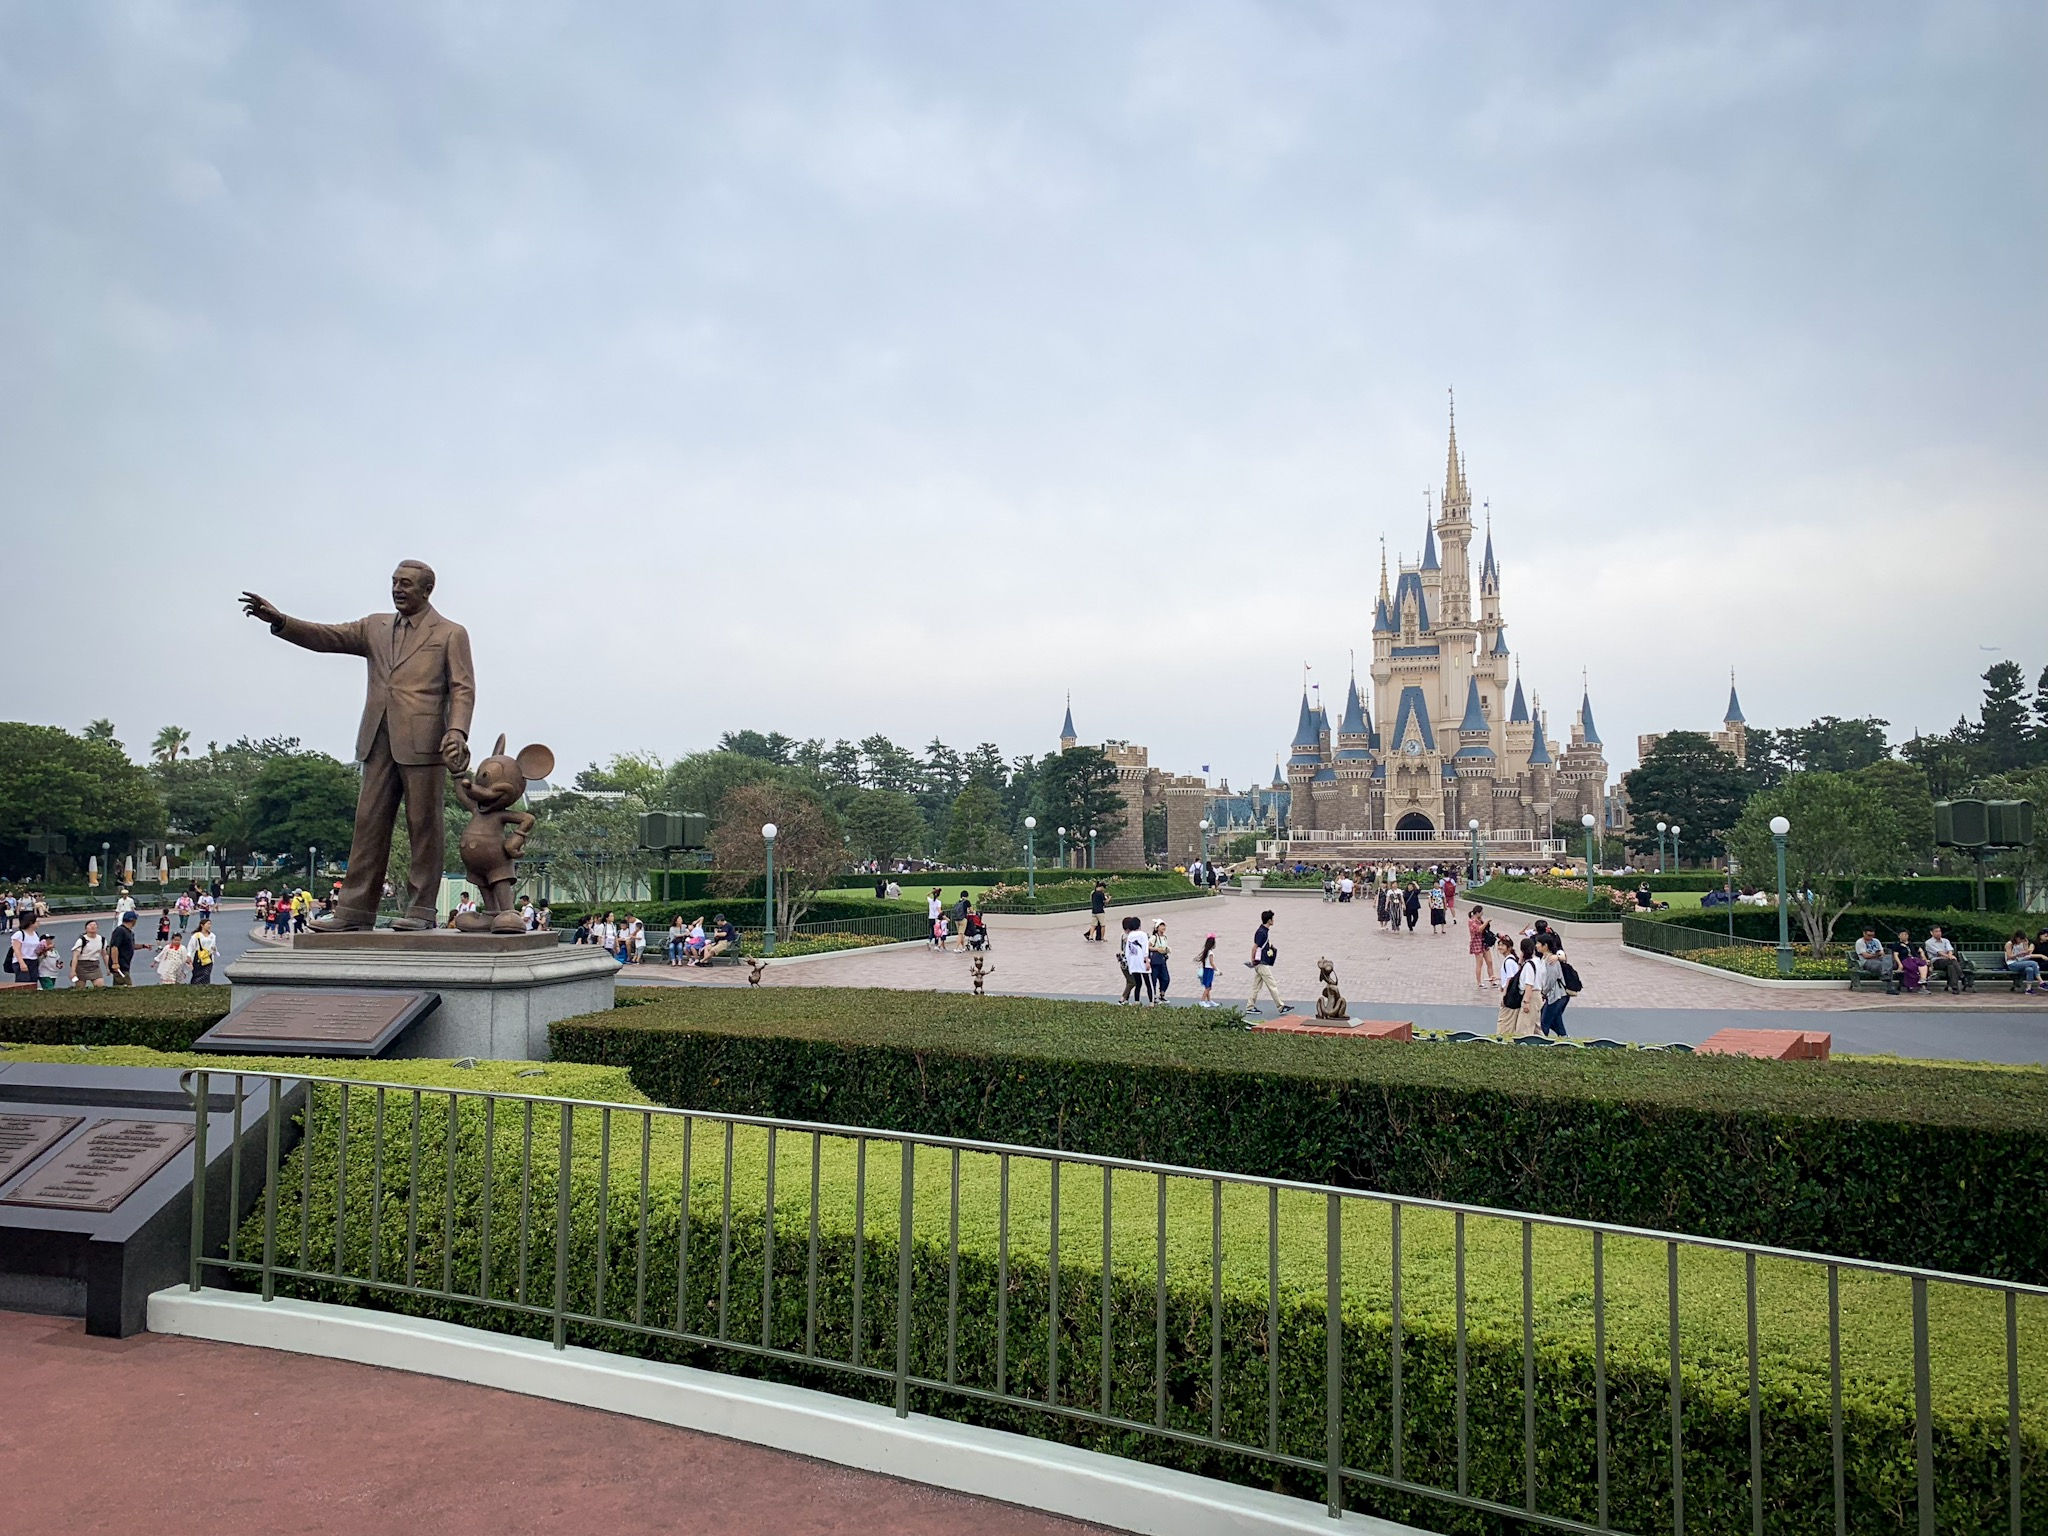 Disneyland is a destination that is sold to you since toddlerhood in the western world. But as I found out when I visited, it isn't as magical as they make out.